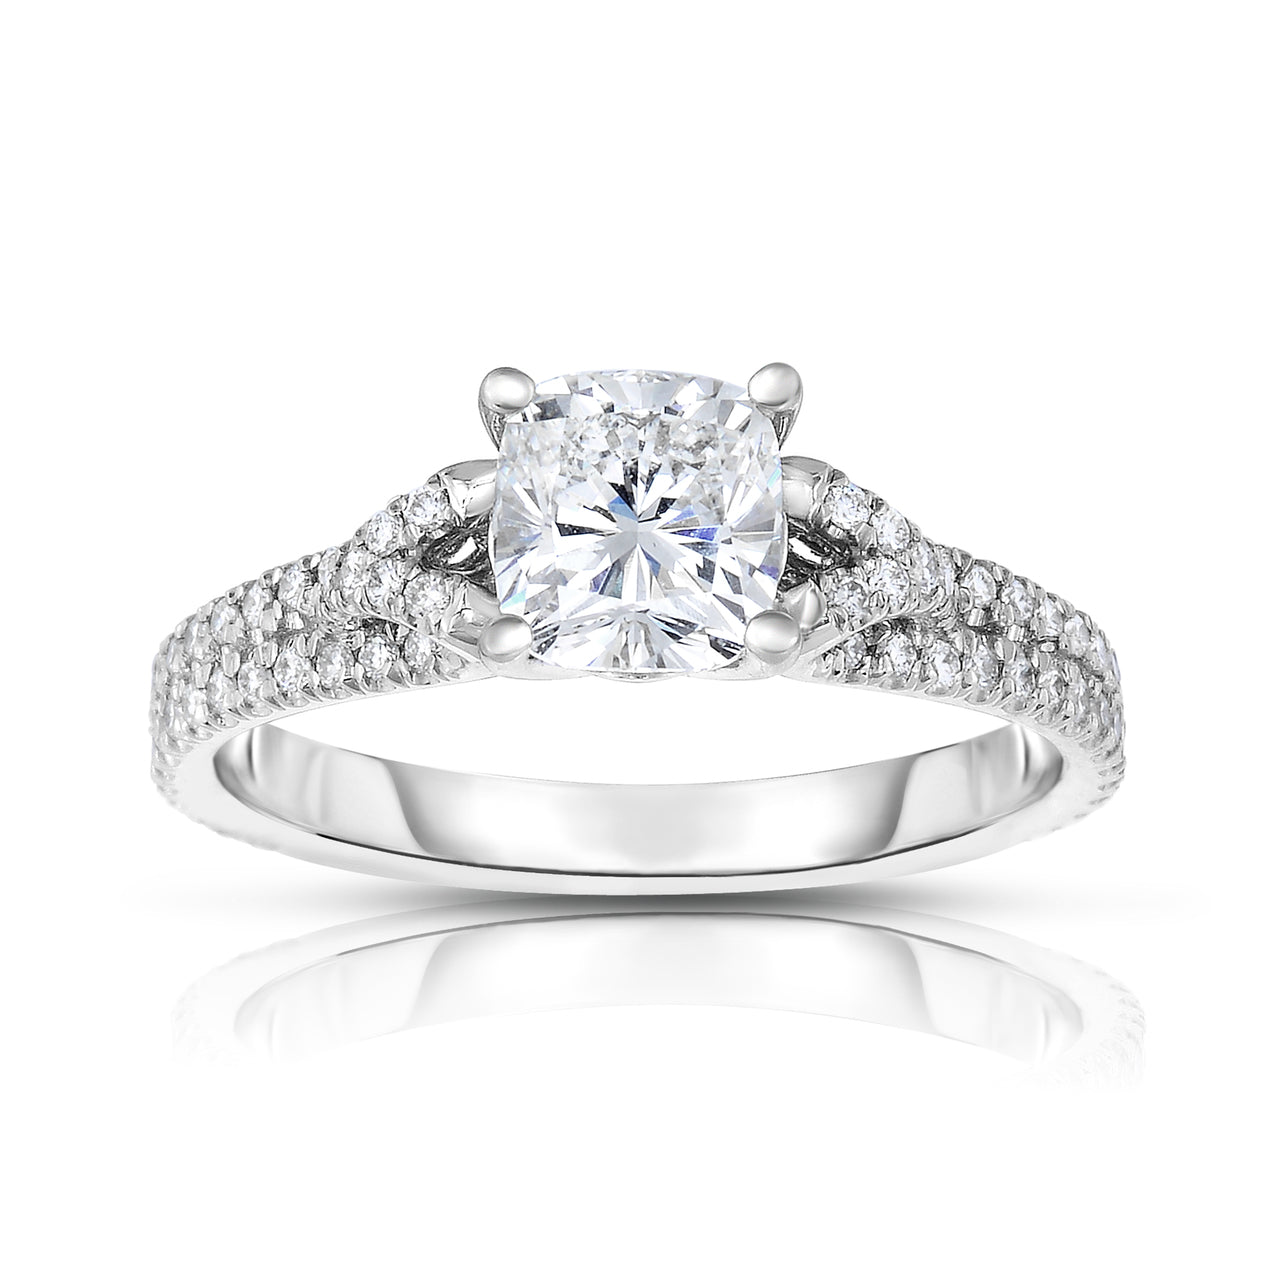 Fink's Exclusive Platinum Cushion Cut Diamond Shank Engagement Ring